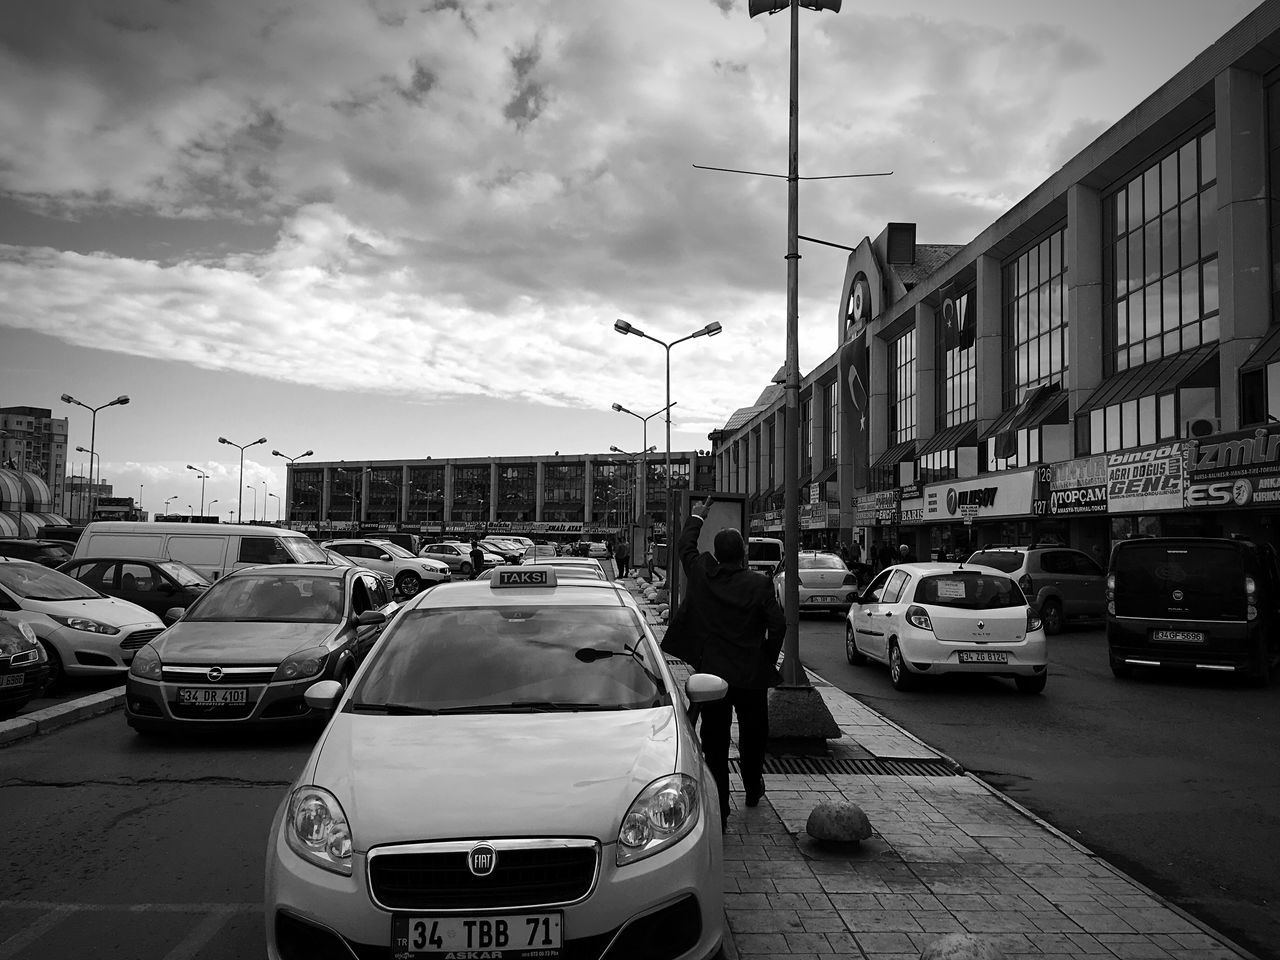 car, land vehicle, mode of transport, transportation, cloud - sky, sky, architecture, building exterior, built structure, city, street, road, outdoors, day, no people, cityscape